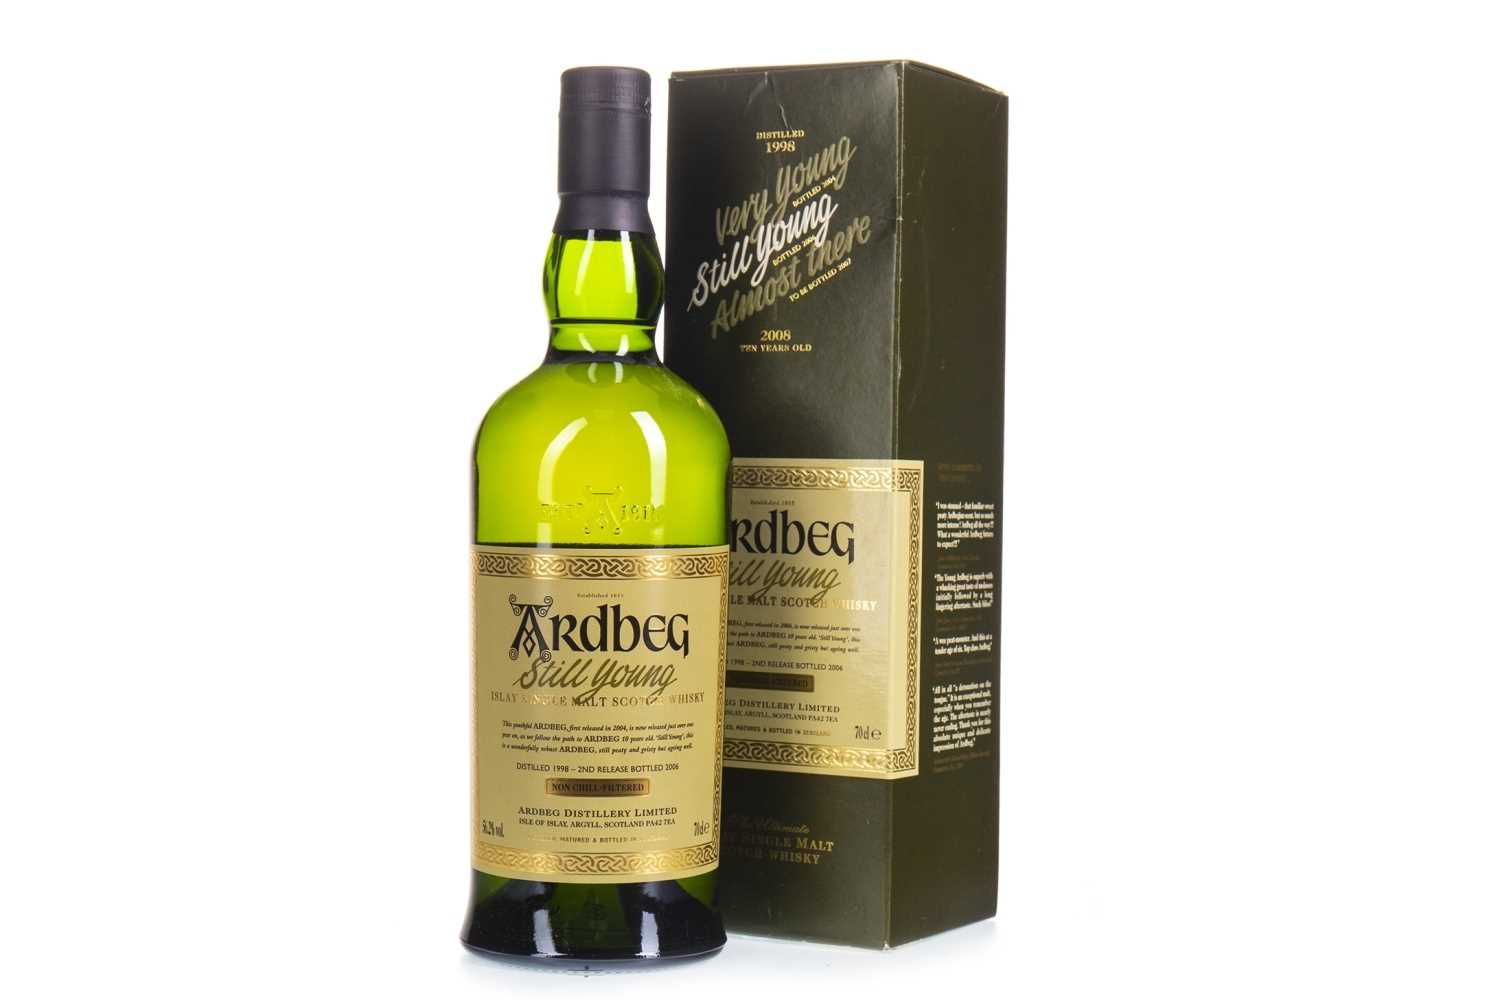 Lot 1-ARDBEG 1998 STILL YOUNG